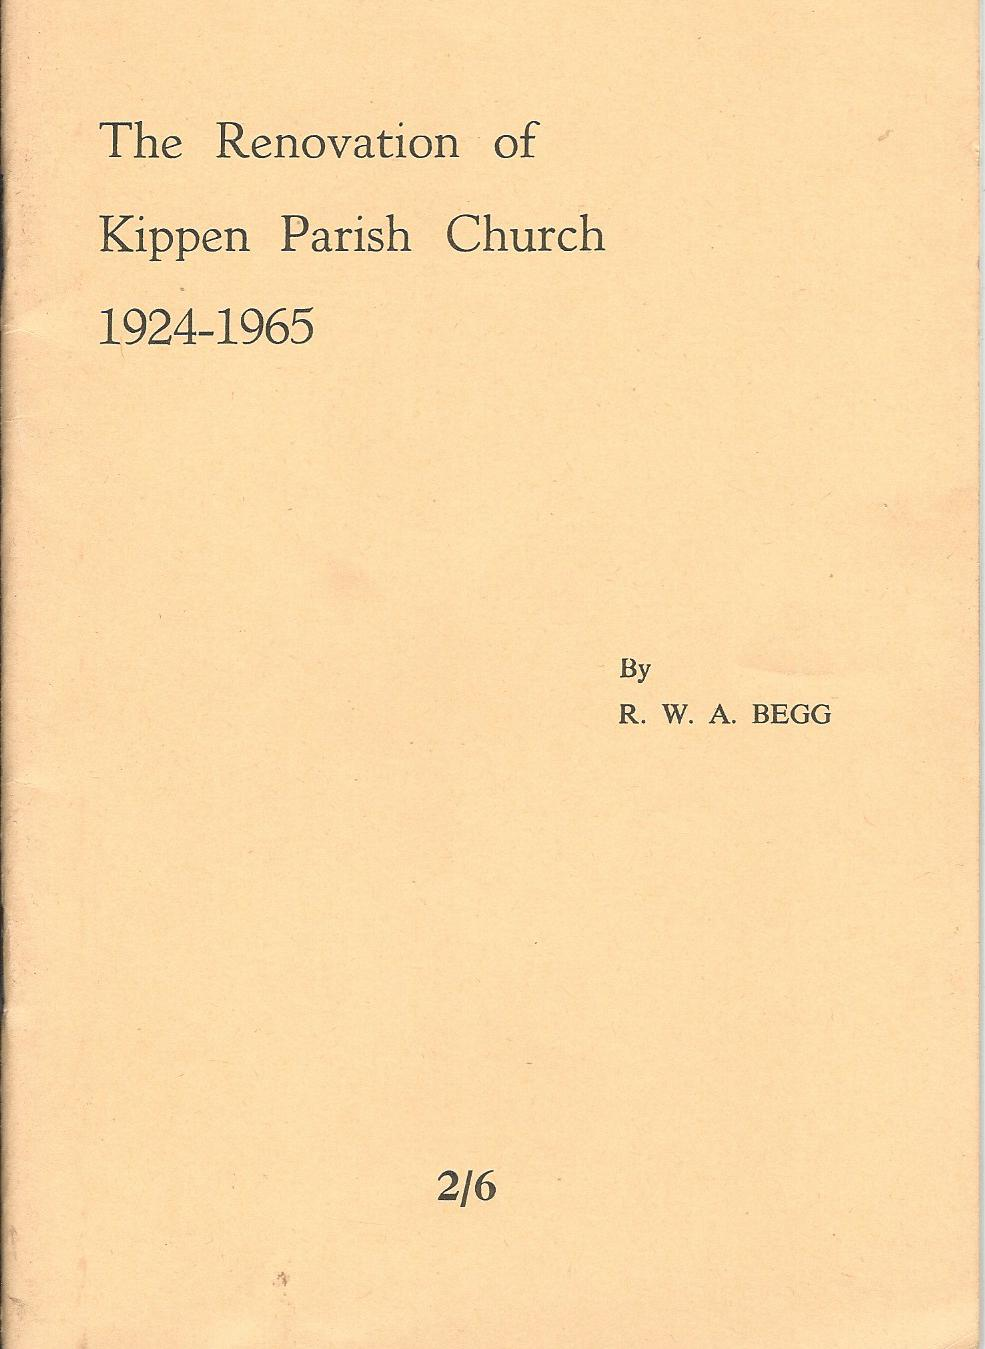 Image for The Renovation of Kippen Parish Church 1924 - 1965.